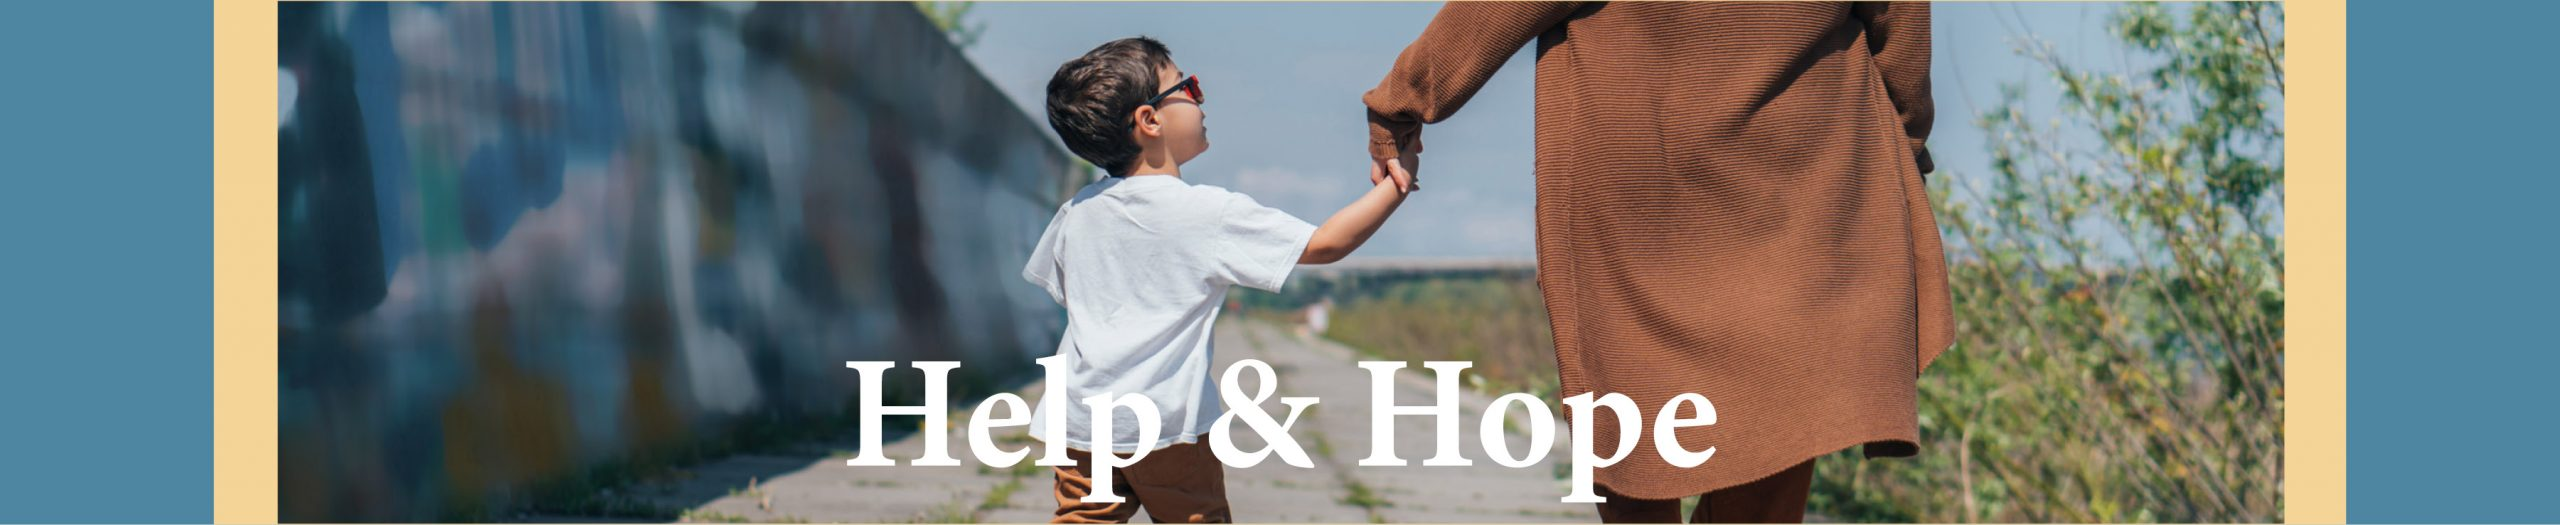 Help and Hope with James Resource Network